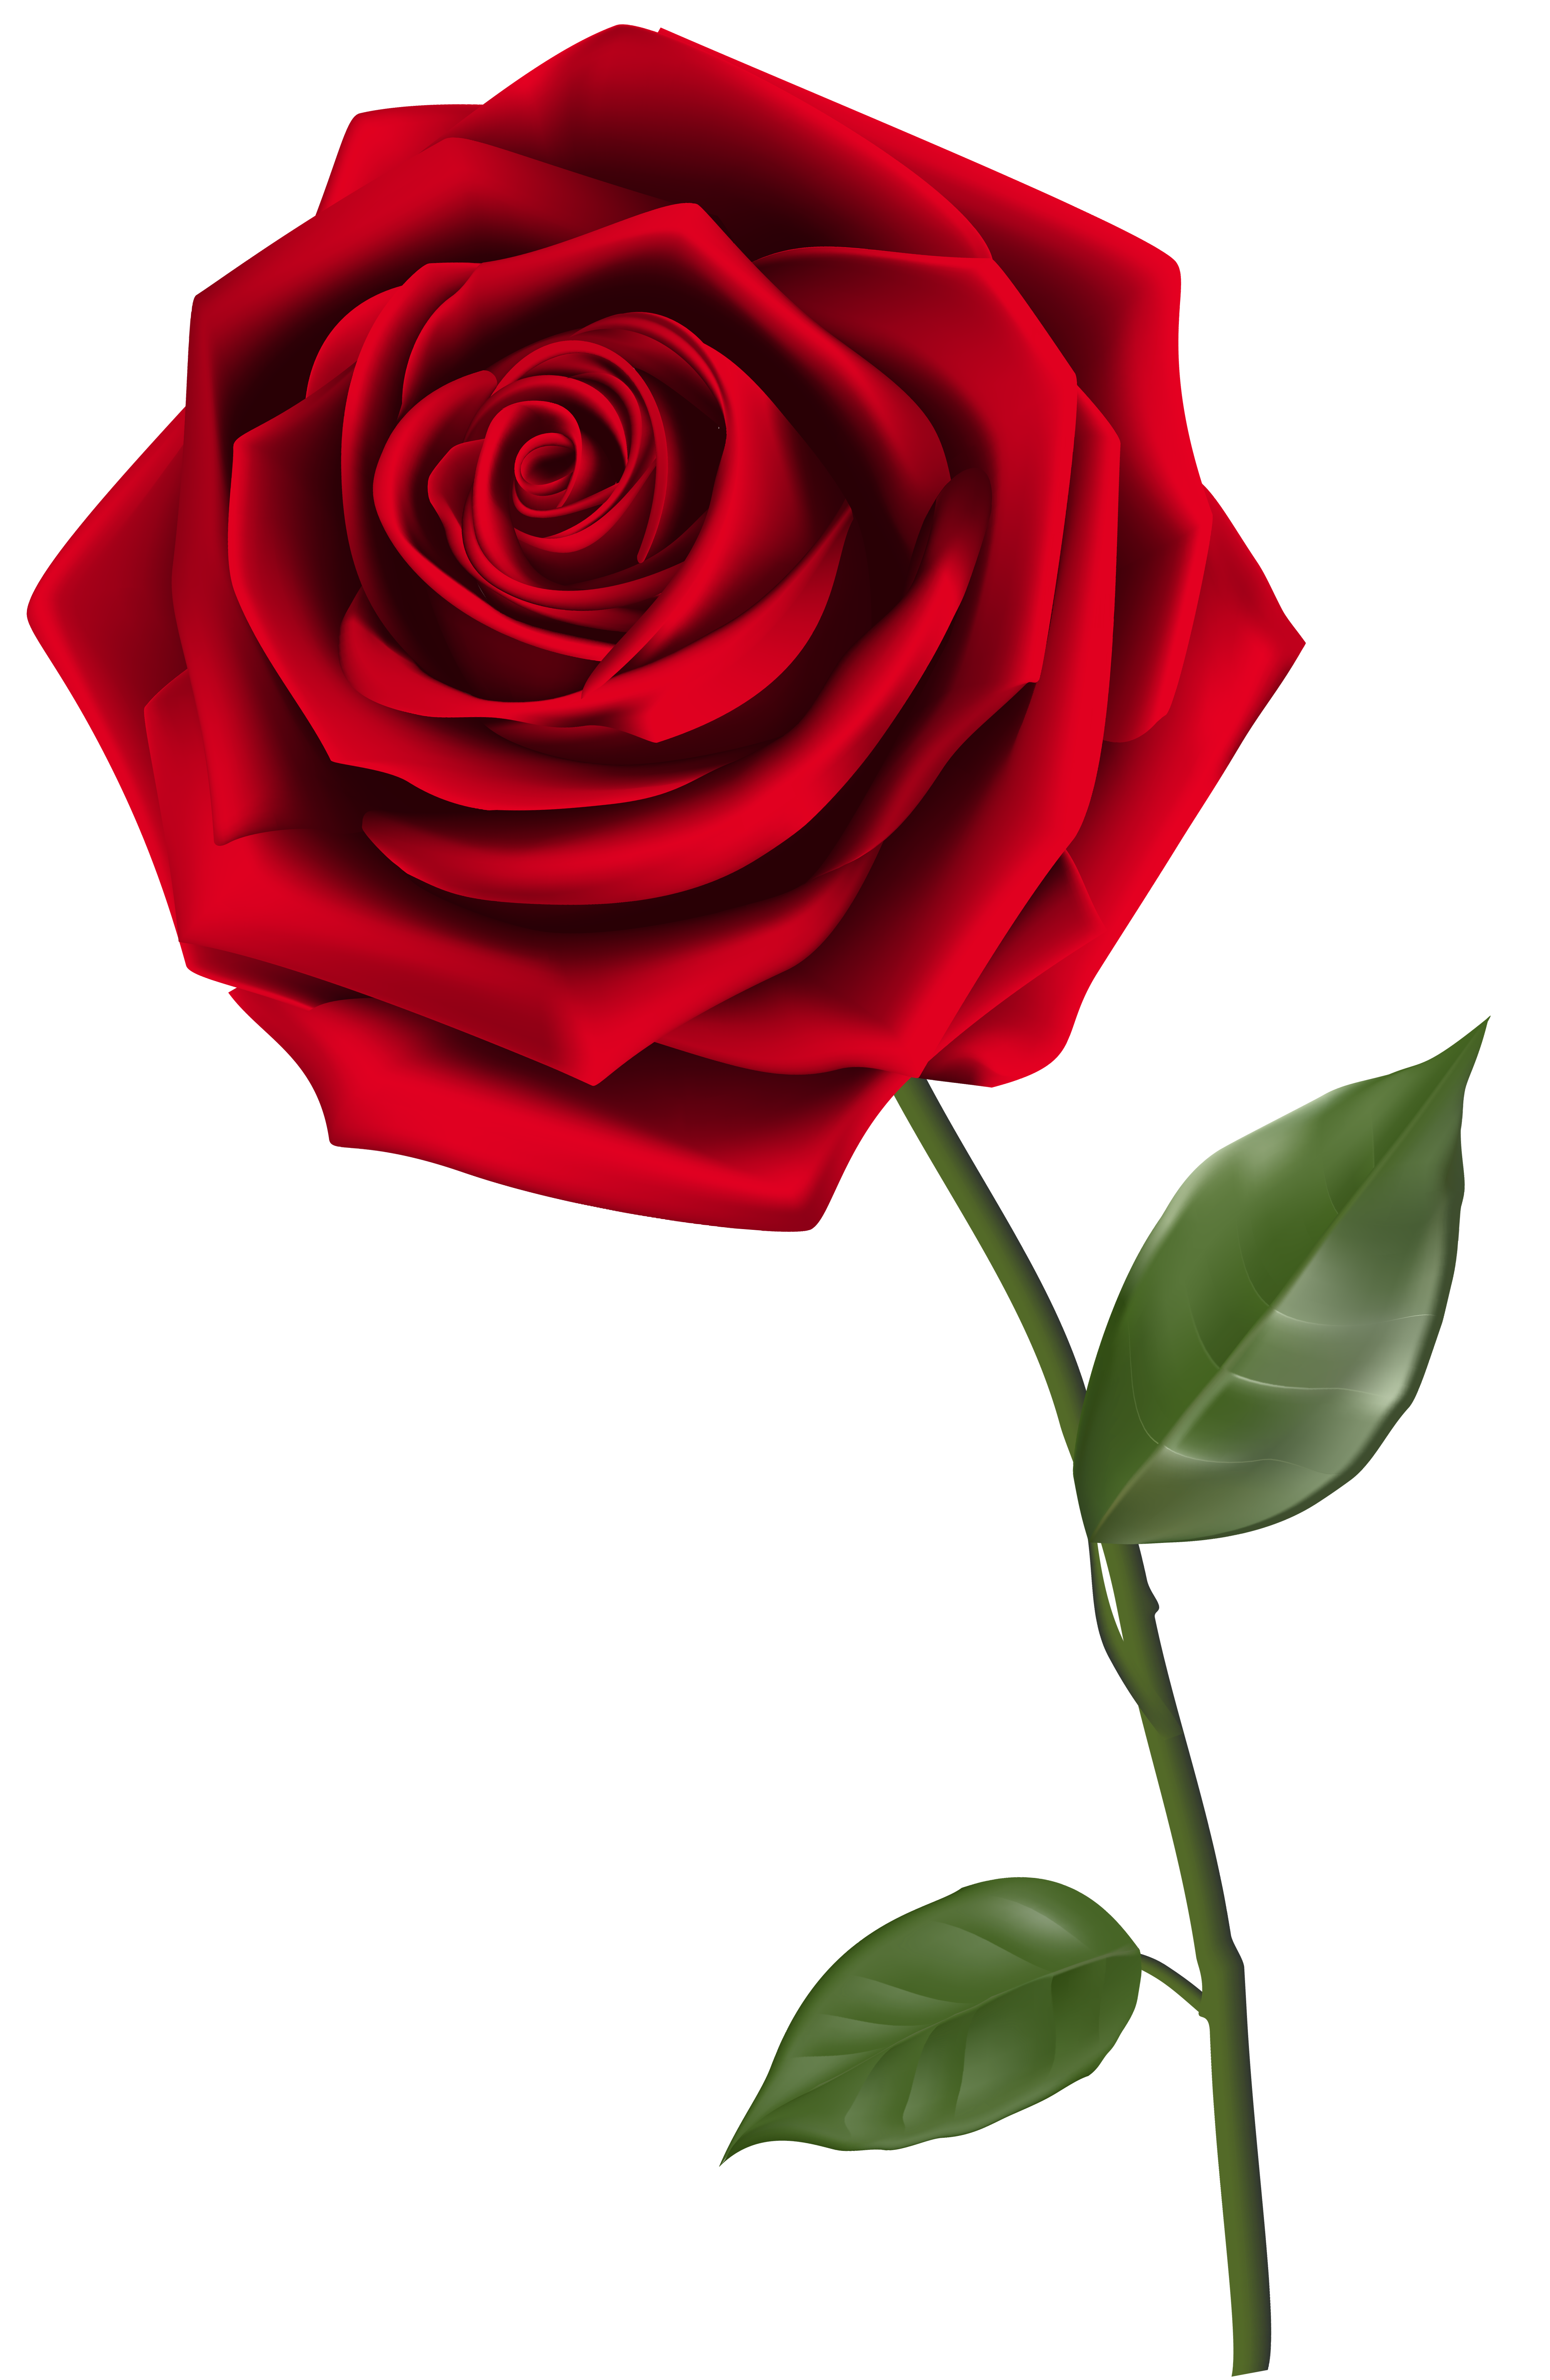 Red flower clipart no background vector black and white Rose Clip art - Single Red Rose PNG Clipart Image 4026*6181 ... vector black and white